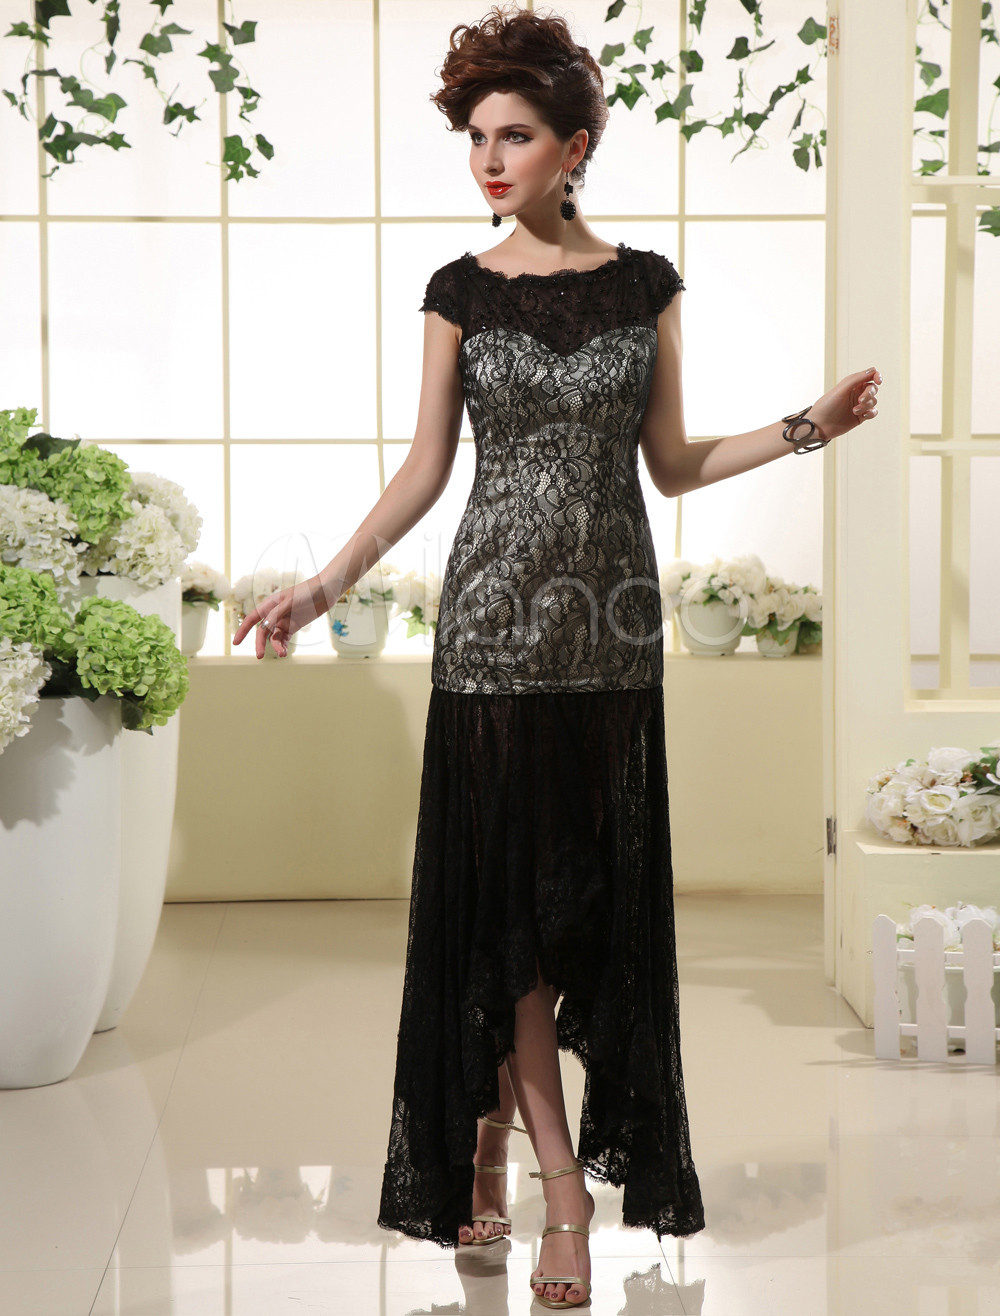 Elegant Sheath Black Lace Asymmetrical Women's Prom Dress Milanoo